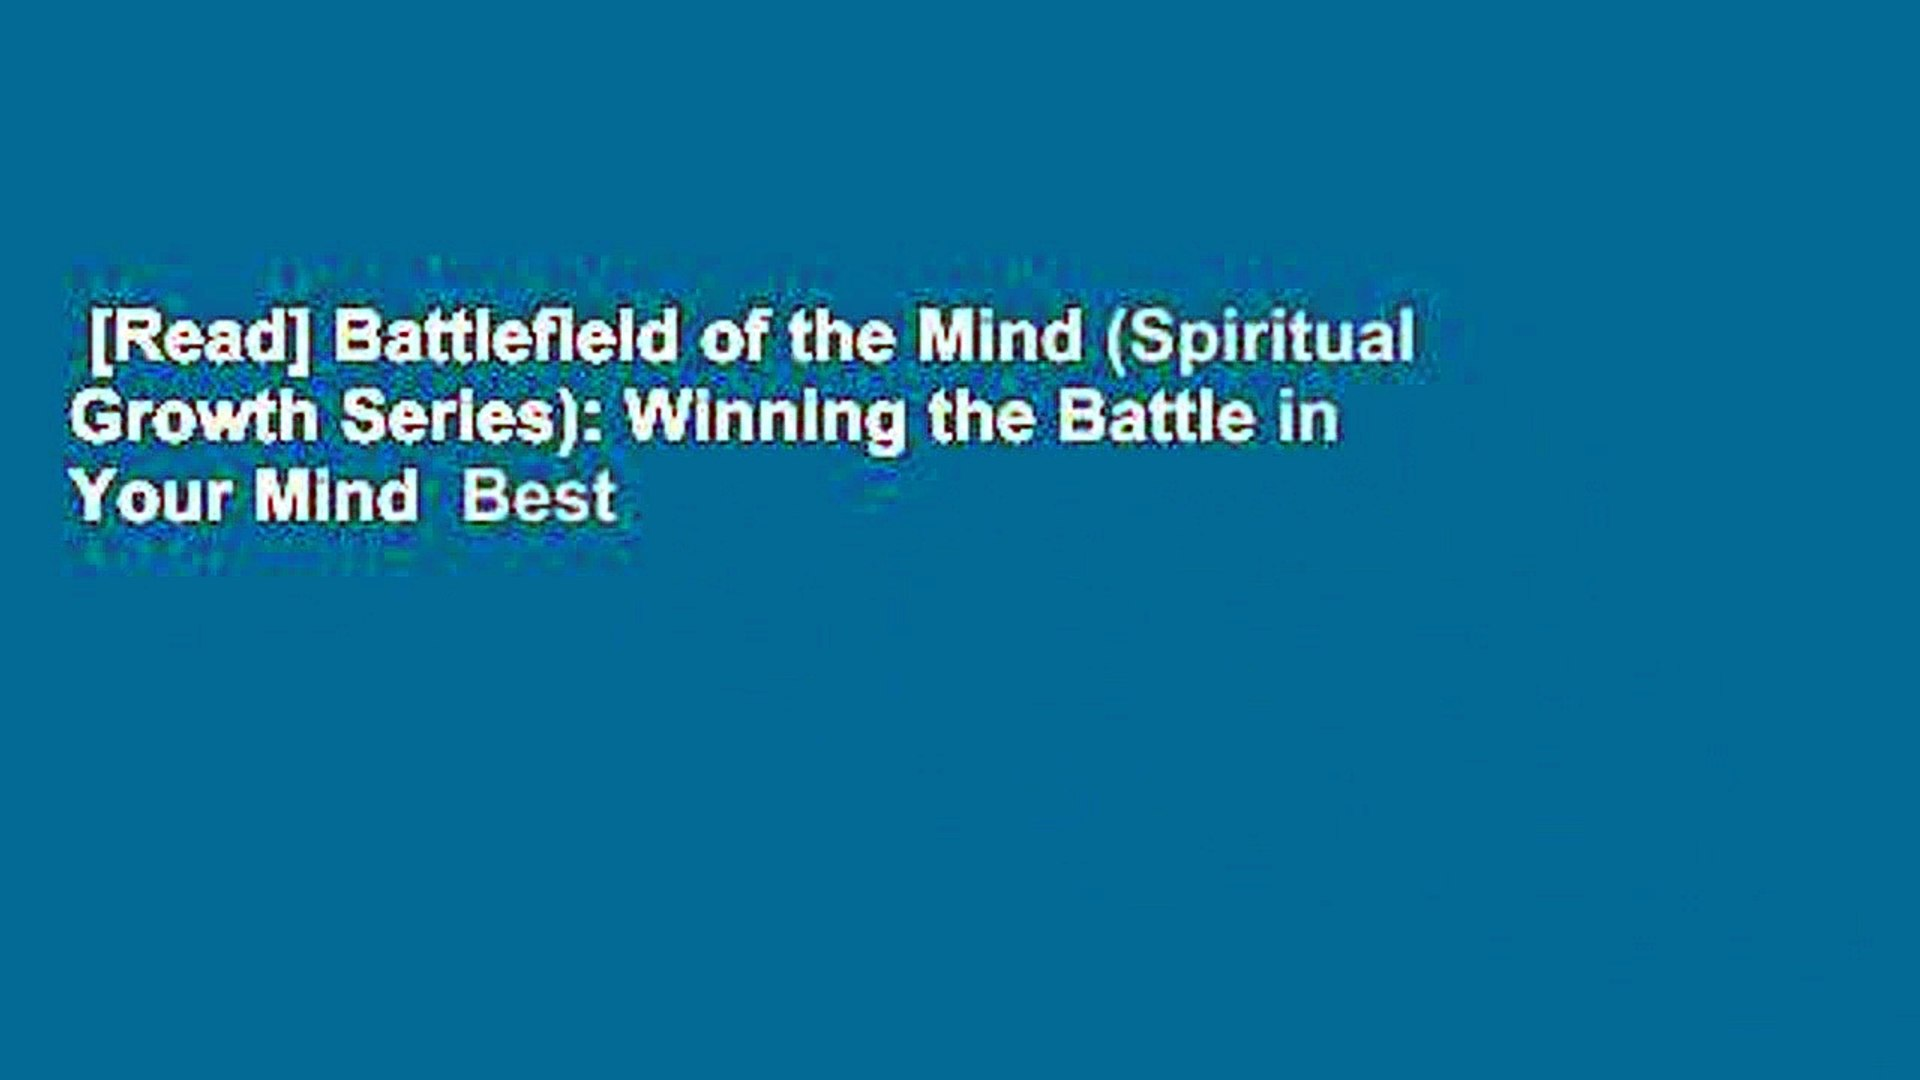 [Read] Battlefield of the Mind (Spiritual Growth Series): Winning the Battle in Your Mind  Best